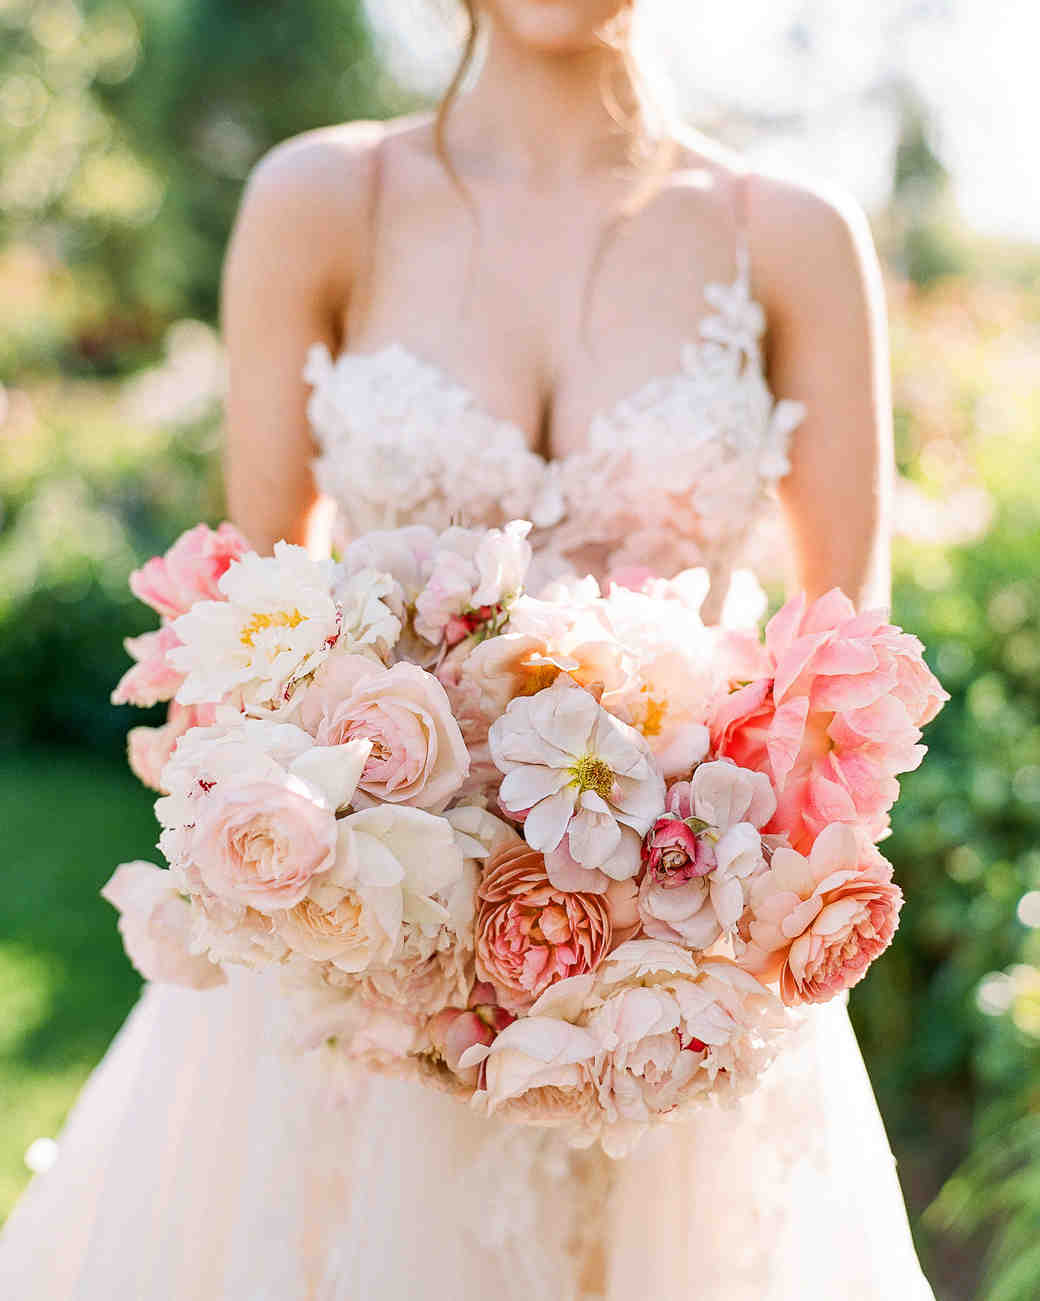 peony bouquets muted pink-and-white peonies, roses, and cosmos to mimic the fluffy dress bodice